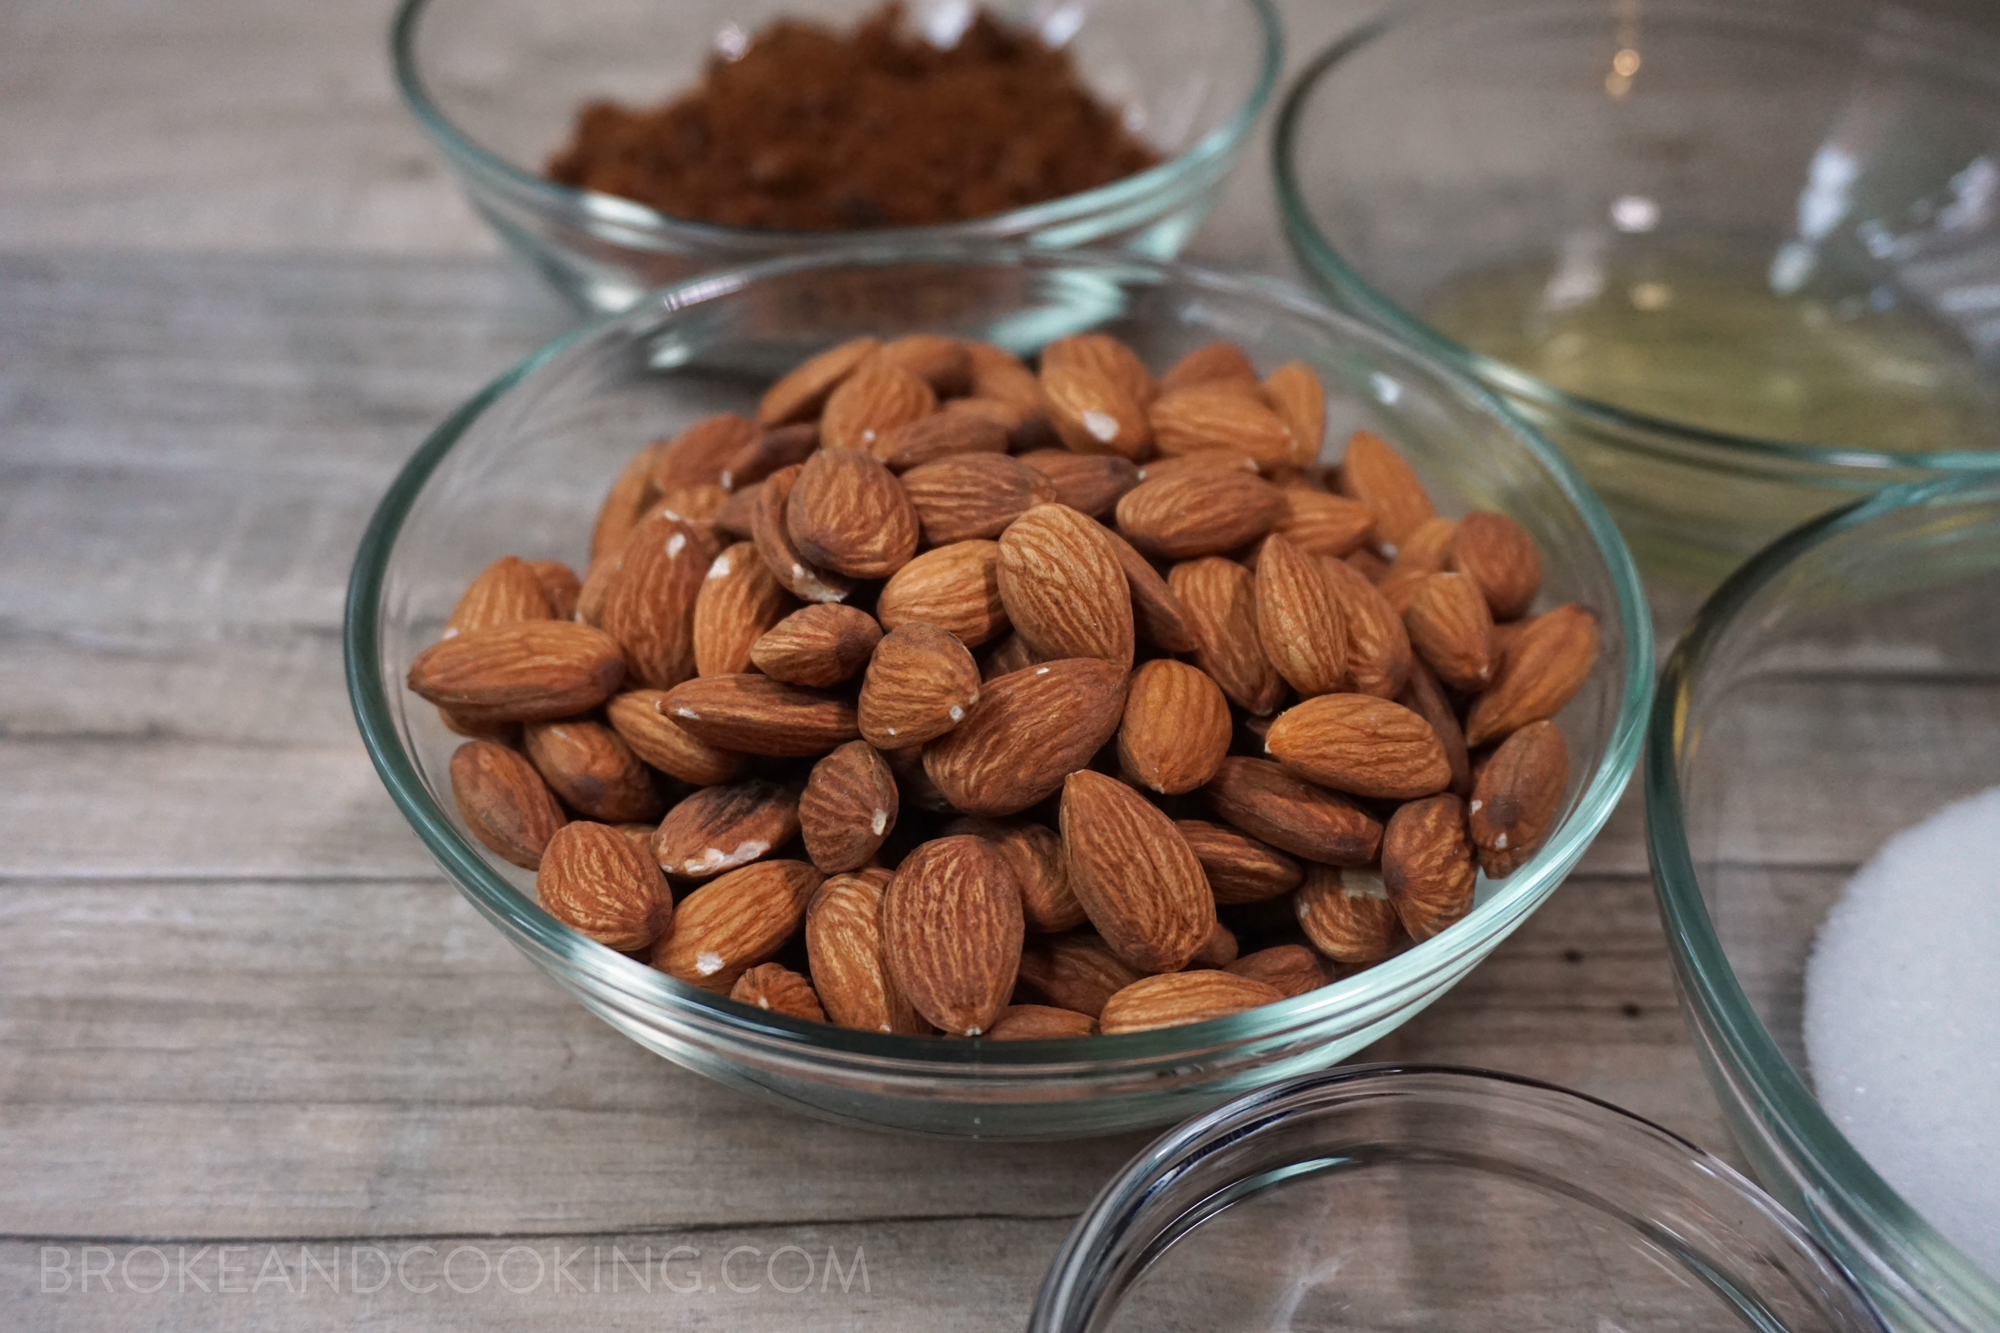 Raw, unsalted almonds